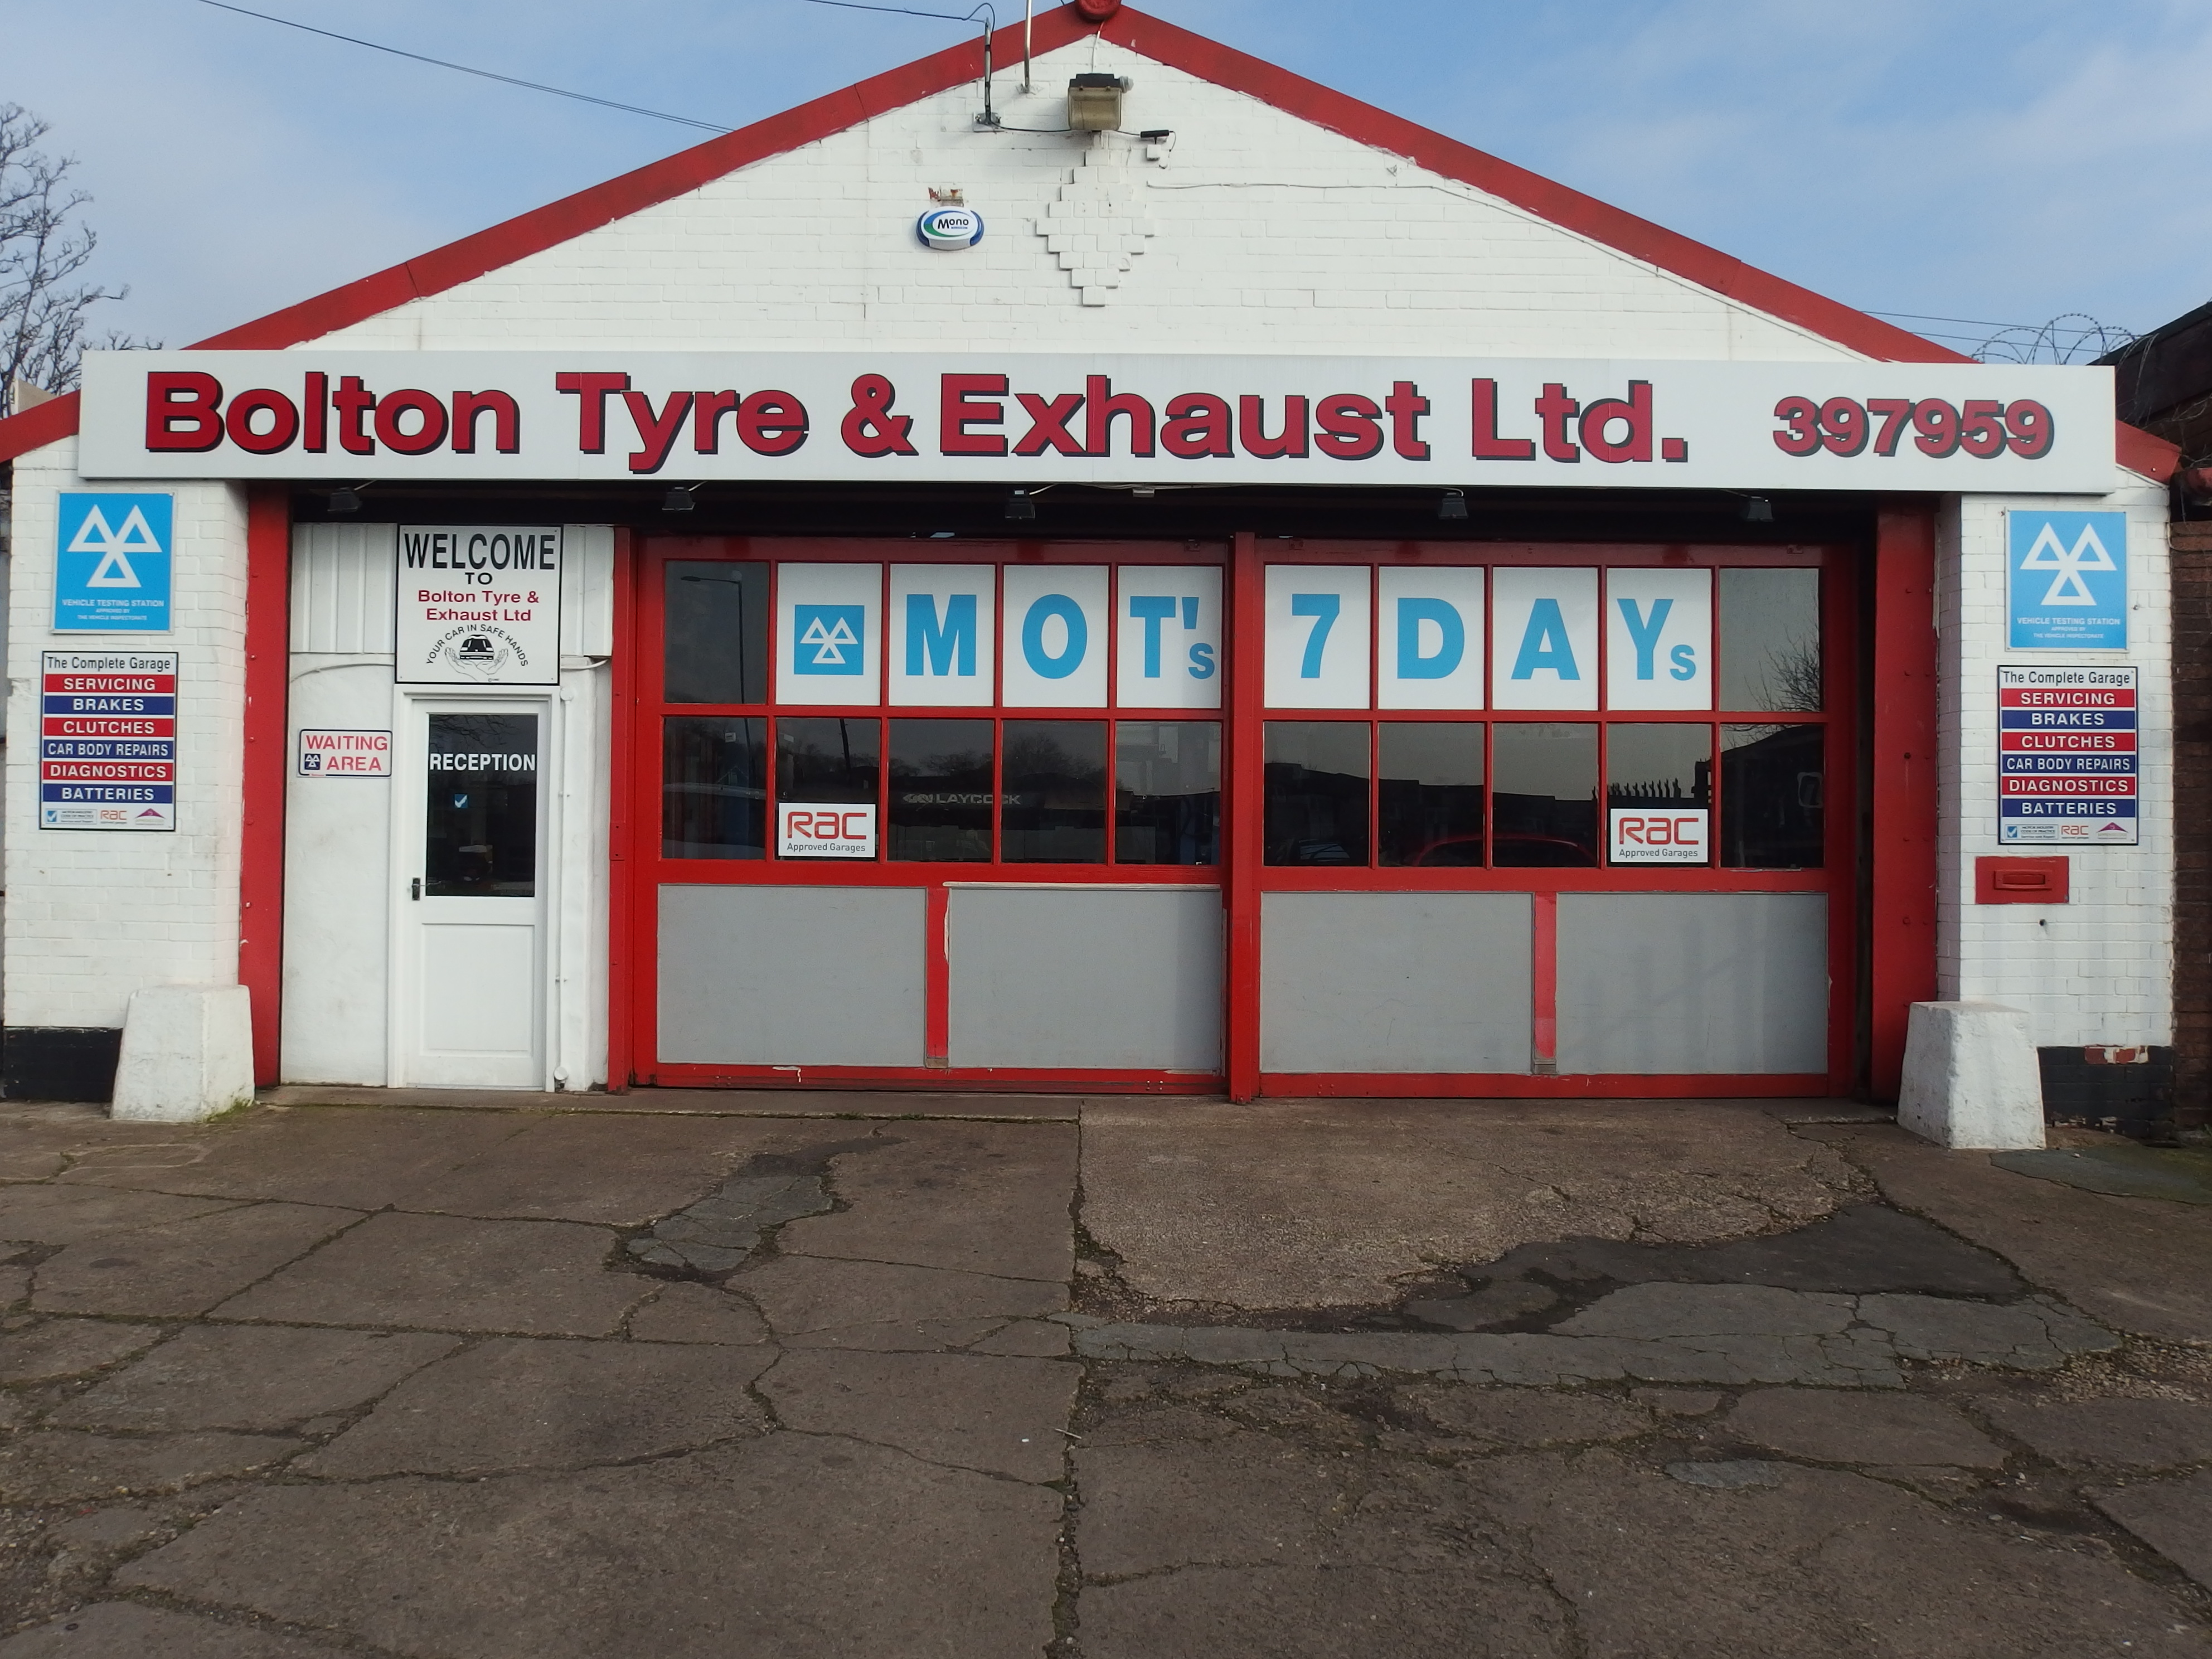 Bolton Tyre & Exhaust Ltd